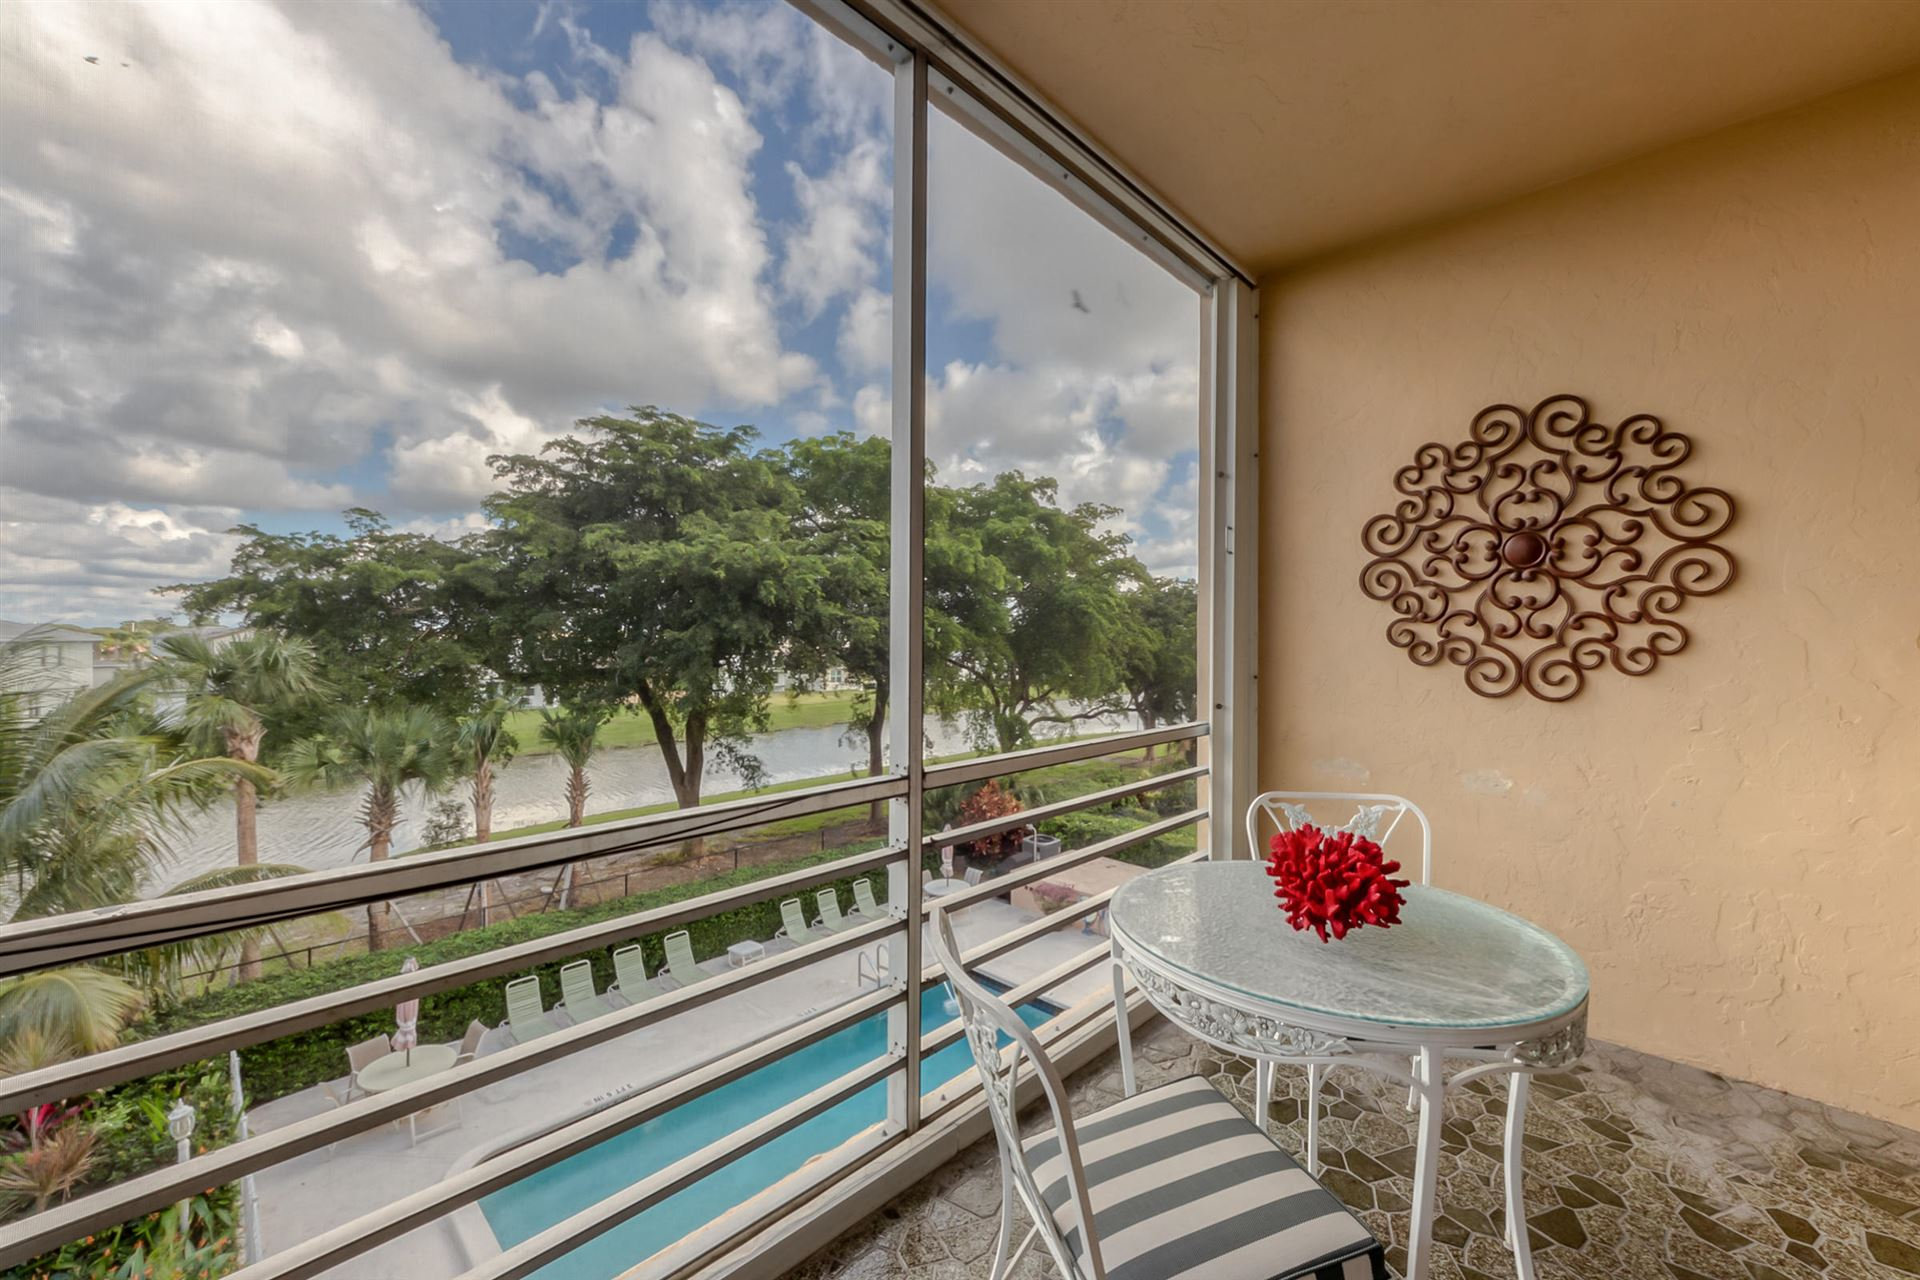 4100 Crystal Lake Drive #305, Deerfield Beach, FL 33064 - #: RX-10673910